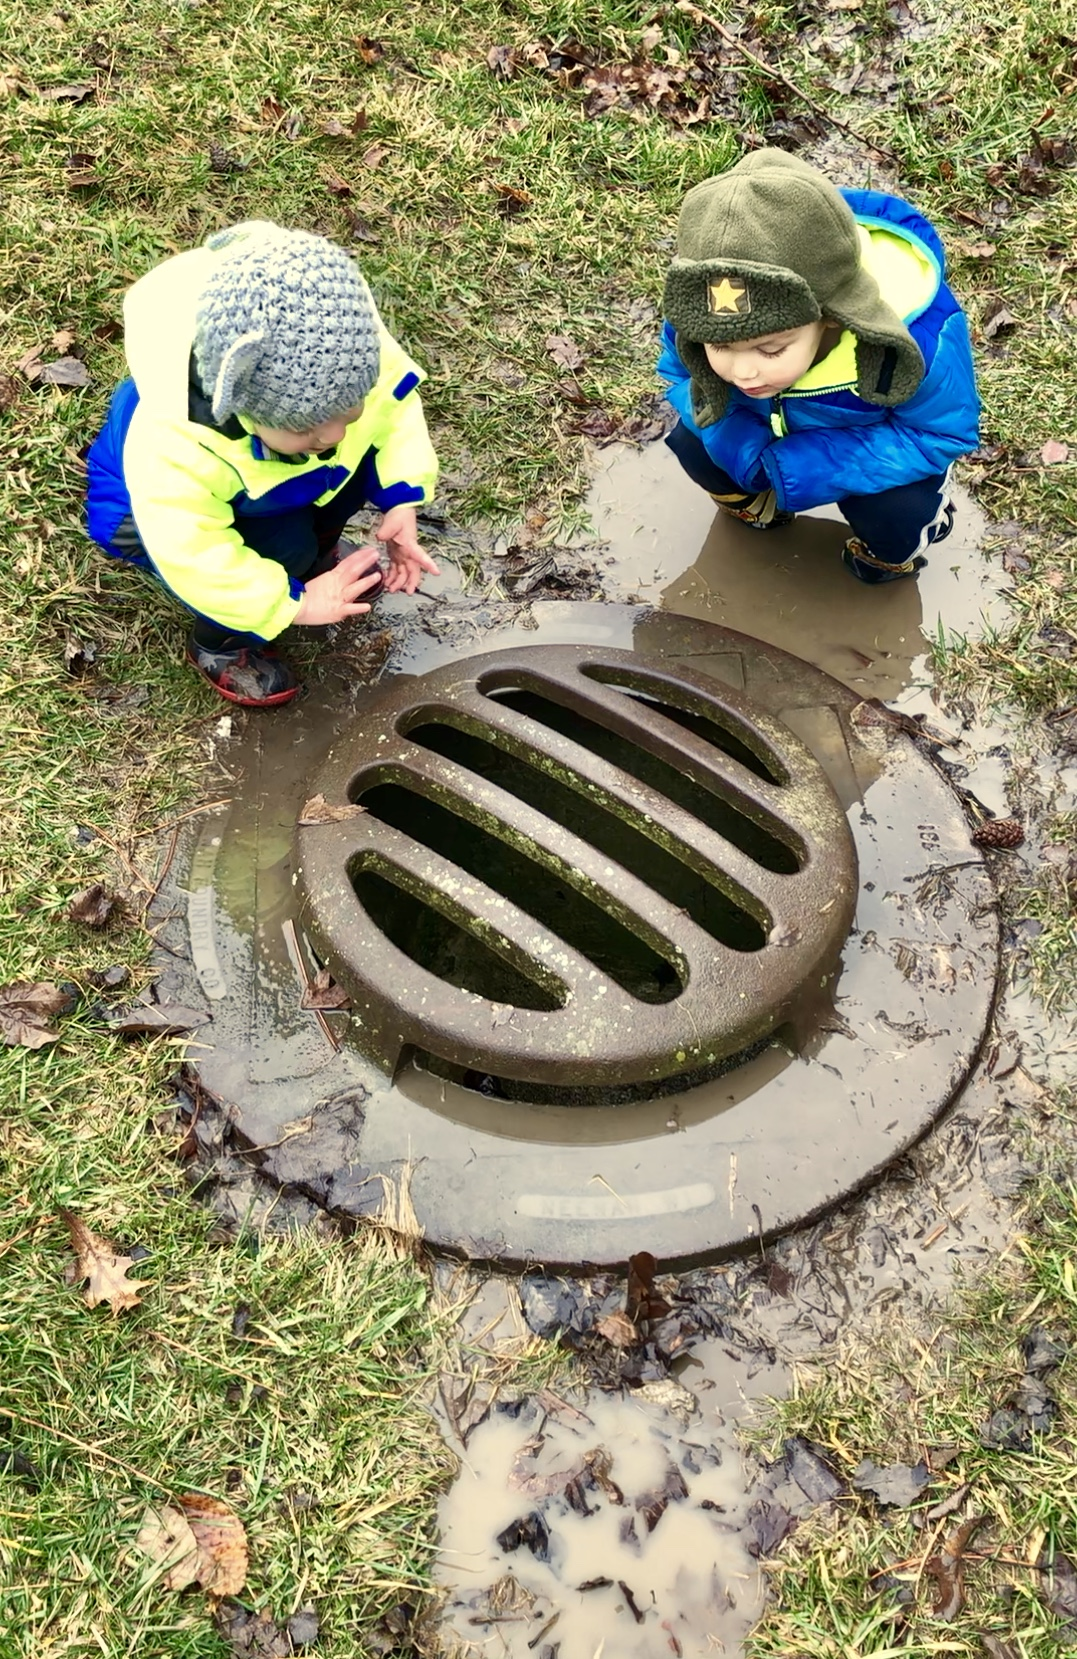 2 boys leaning over a drain